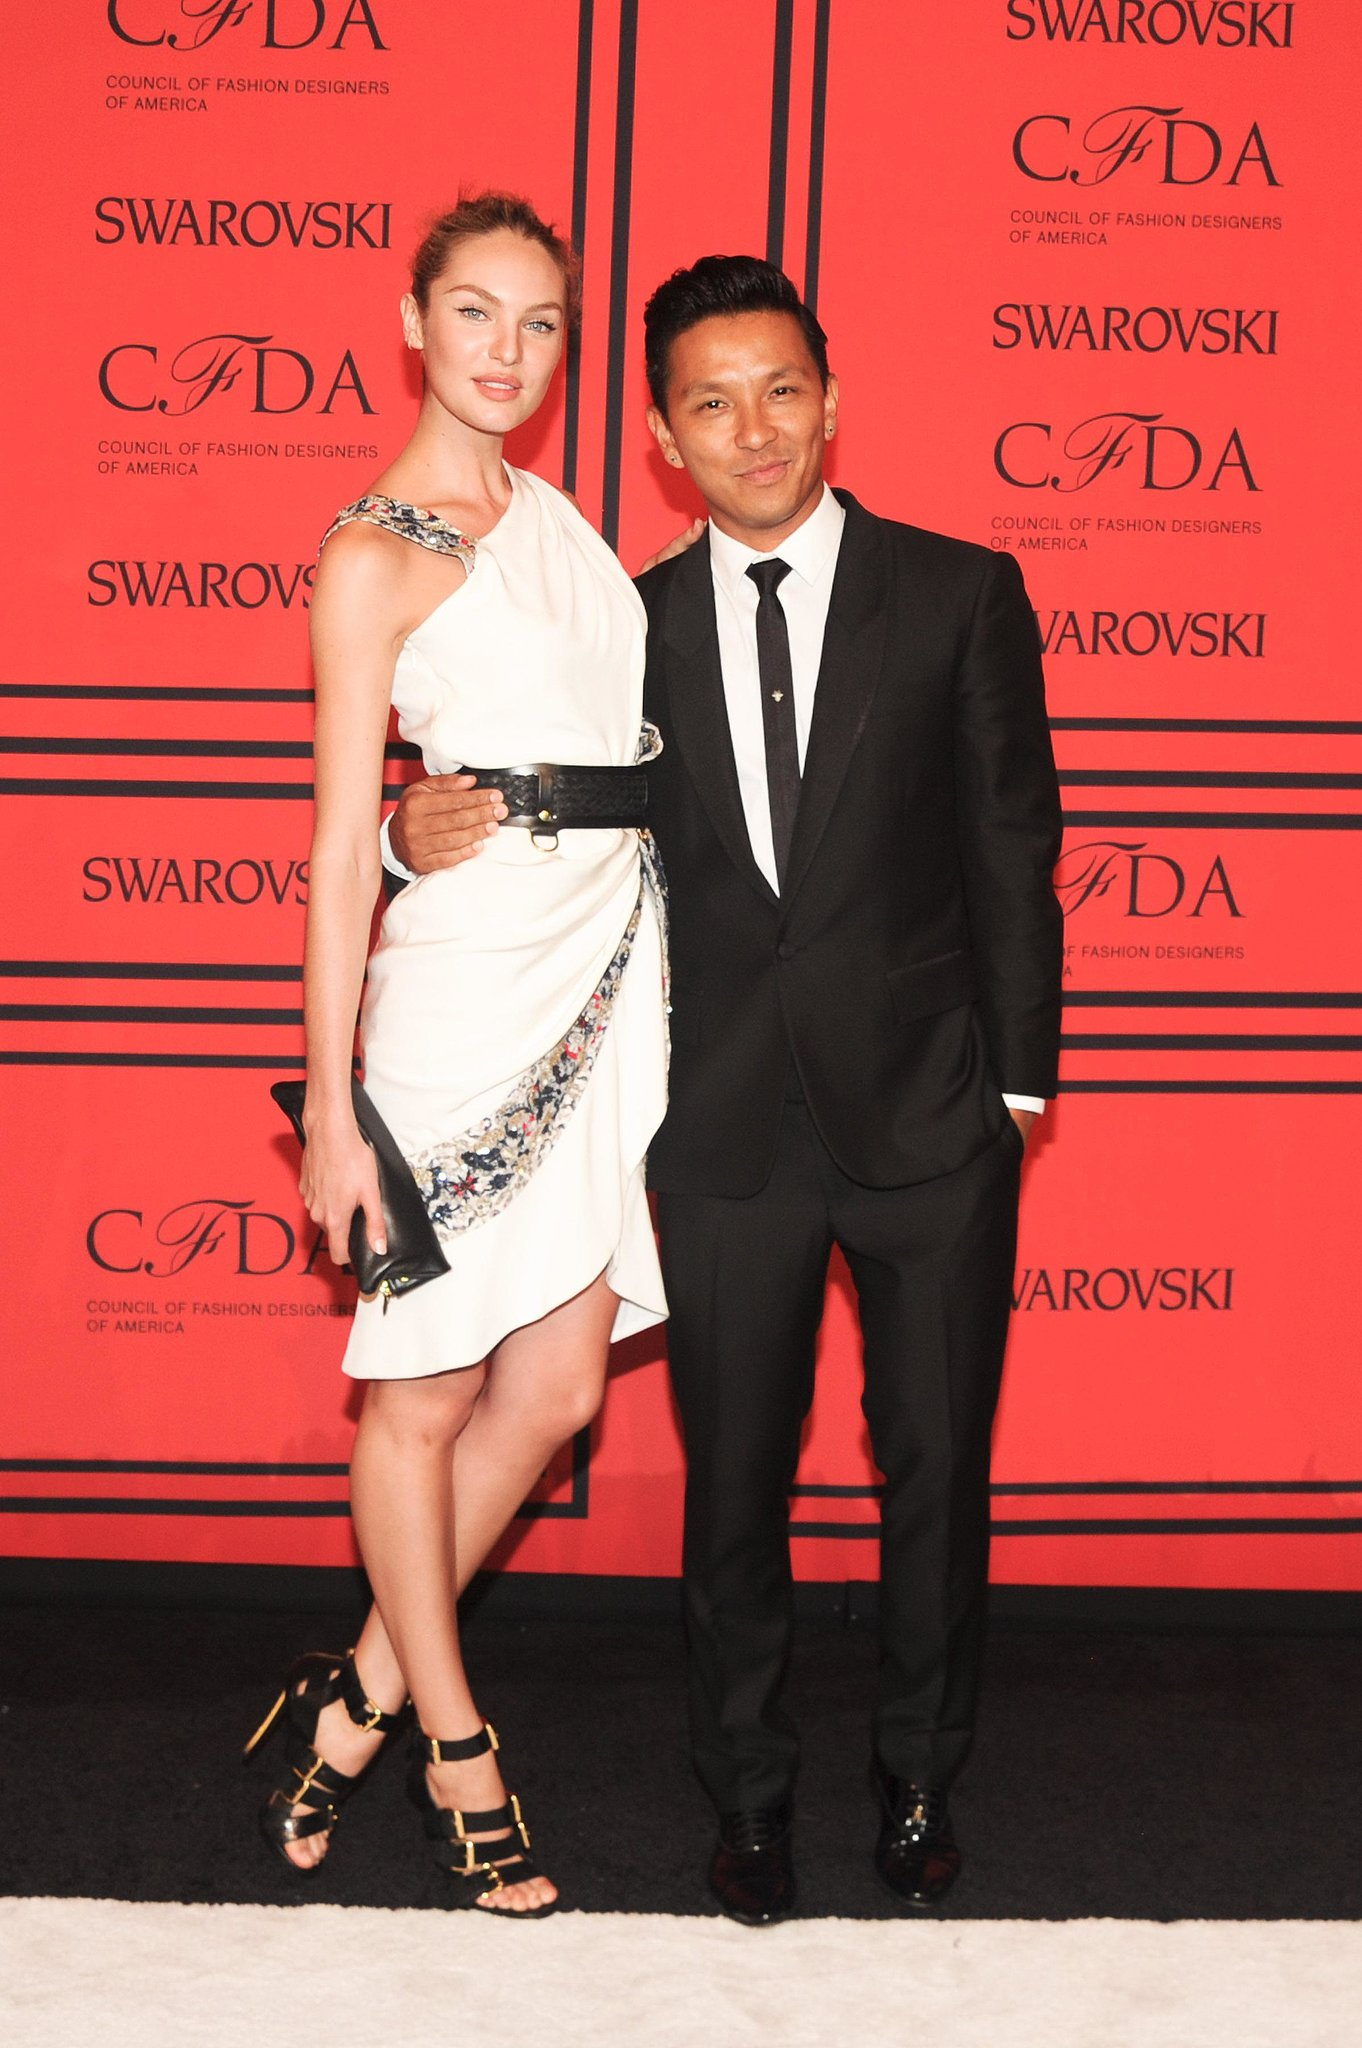 Candice Swanepoel with Prabal Gurung at the 2013 CFDA Awards. Source: Joe Schil